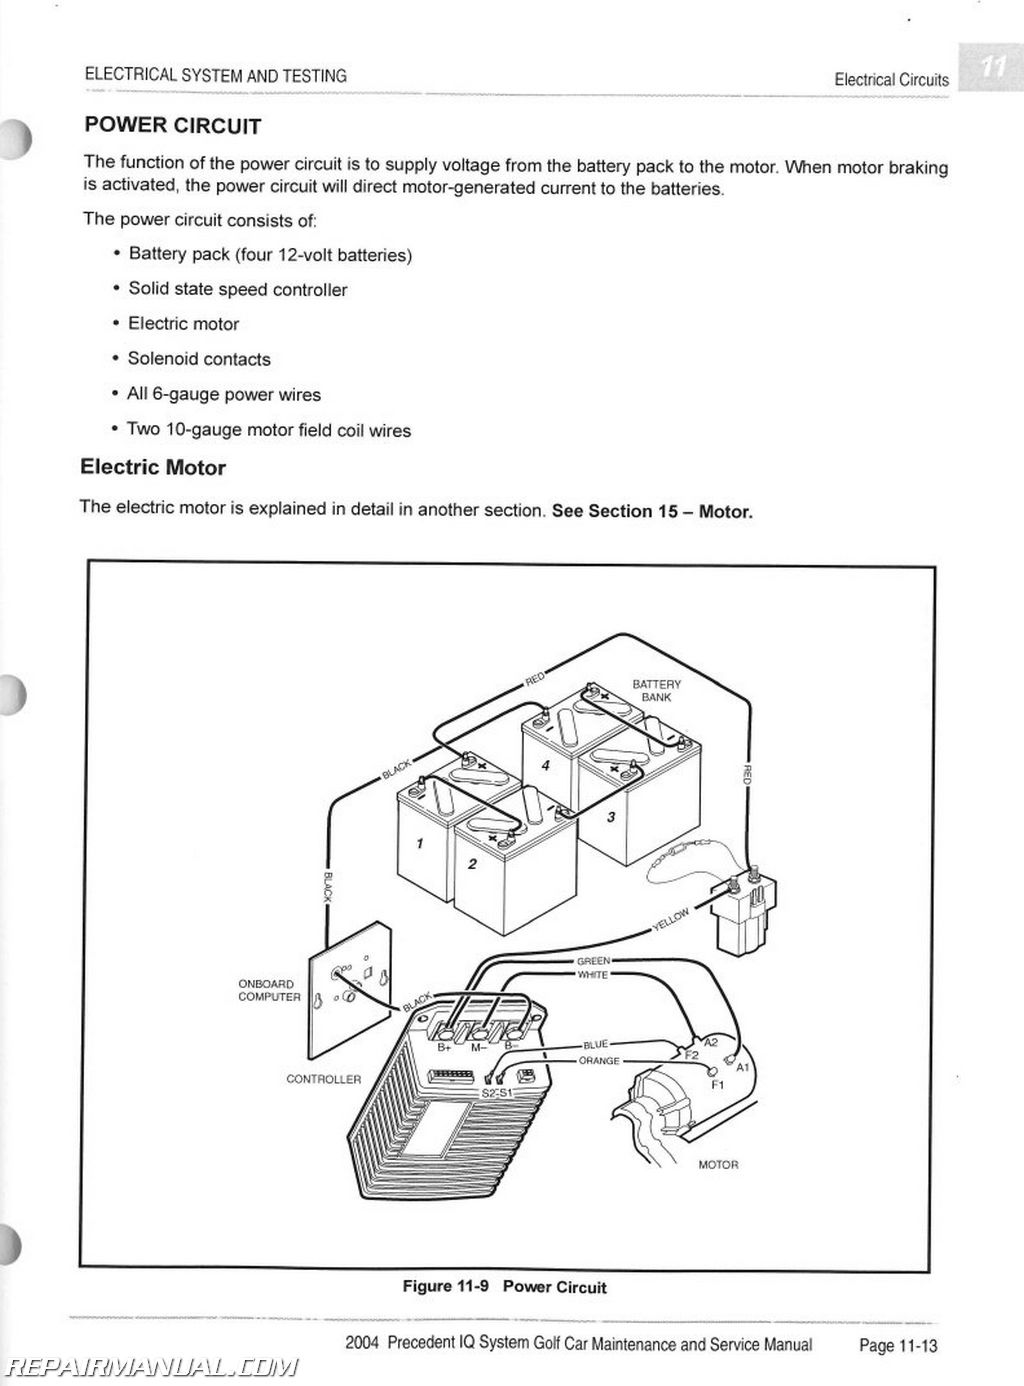 Club Car Gas Golf Cart Wiring Diagram on 1986 harley-davidson carburetor diagram, harley davidson golf cart engine diagram, club car solenoid wiring diagram, club car wire diagram, forward and reverse switch diagram, gas club car electrical schematics, 92 club car wiring diagram, 1993 gas club car wiring diagram, 1992 gas club car wiring diagram, club car 36v batteries diagram, 87 club car wiring diagram, 94 club car wiring diagram, 1996 gas club car wiring diagram, club car headlight wiring diagram, electric club car wiring diagram, 01 club car wiring diagram, club car electrical diagram, 93 club car wiring diagram, club car precedent front suspension diagram, club car schematic diagram,